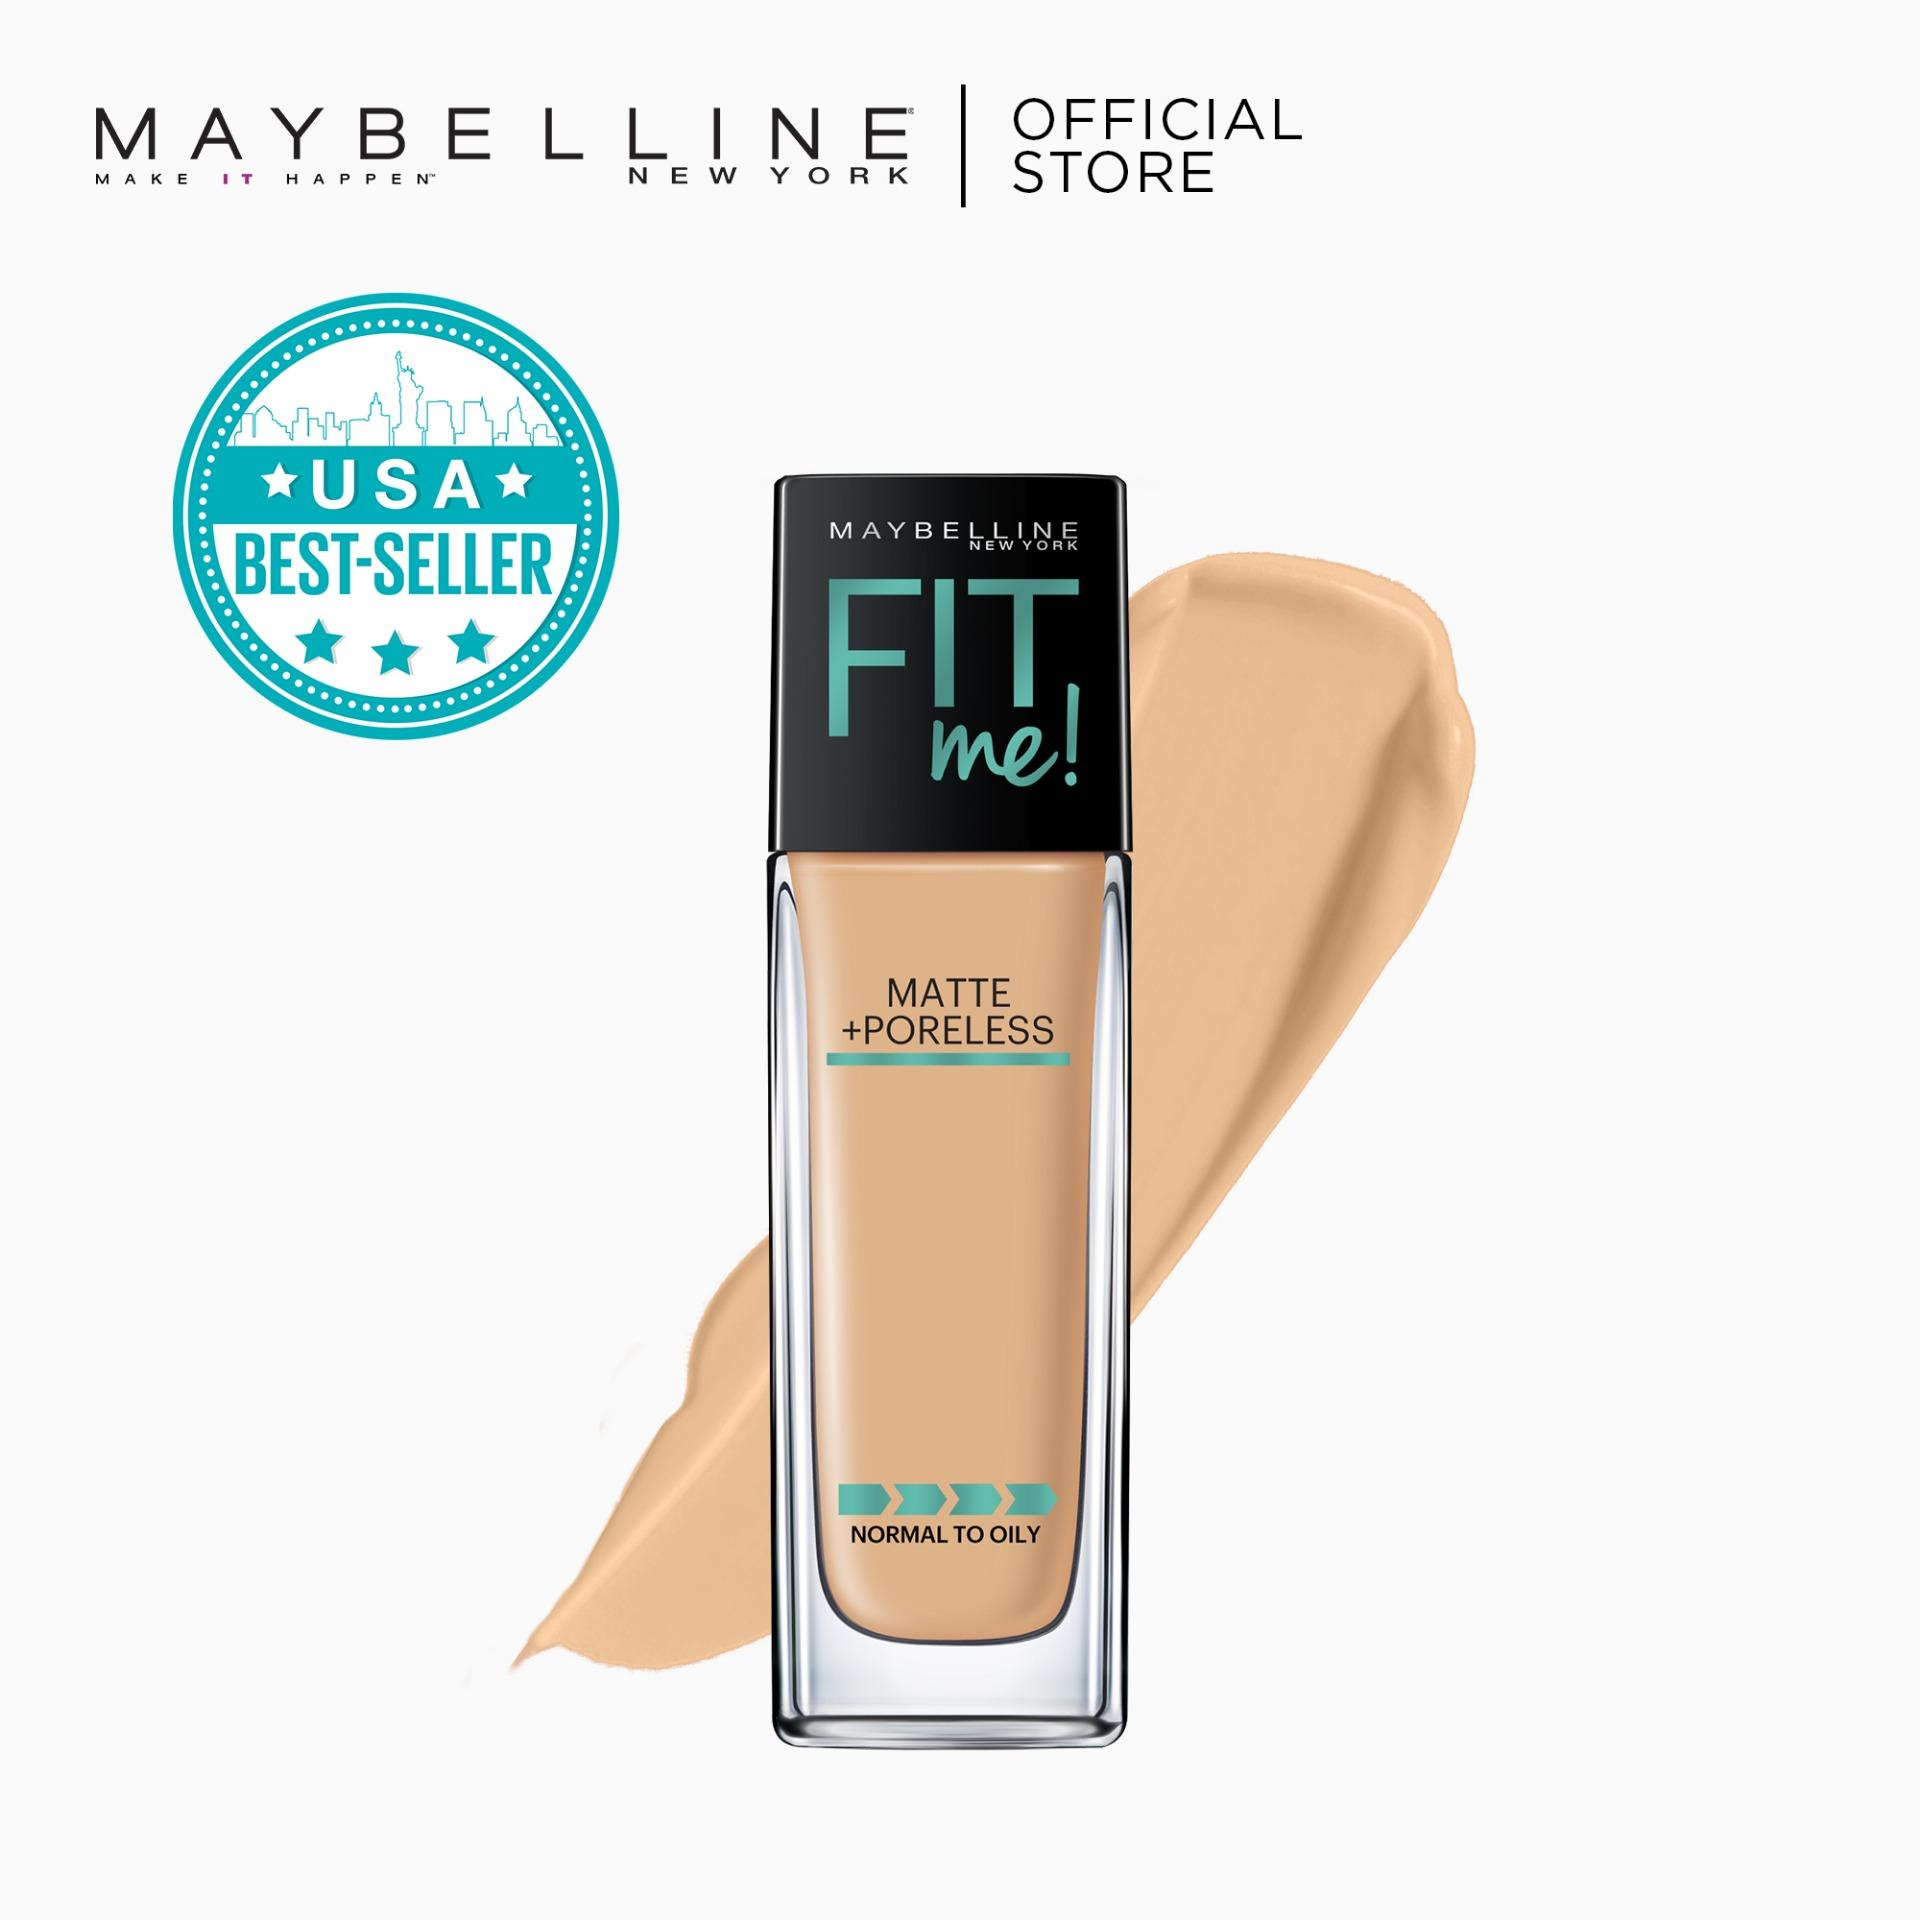 Maybelline Fit Me Matte + Poreless Liquid Foundation 30 mL - 228 Soft Tan Philippines